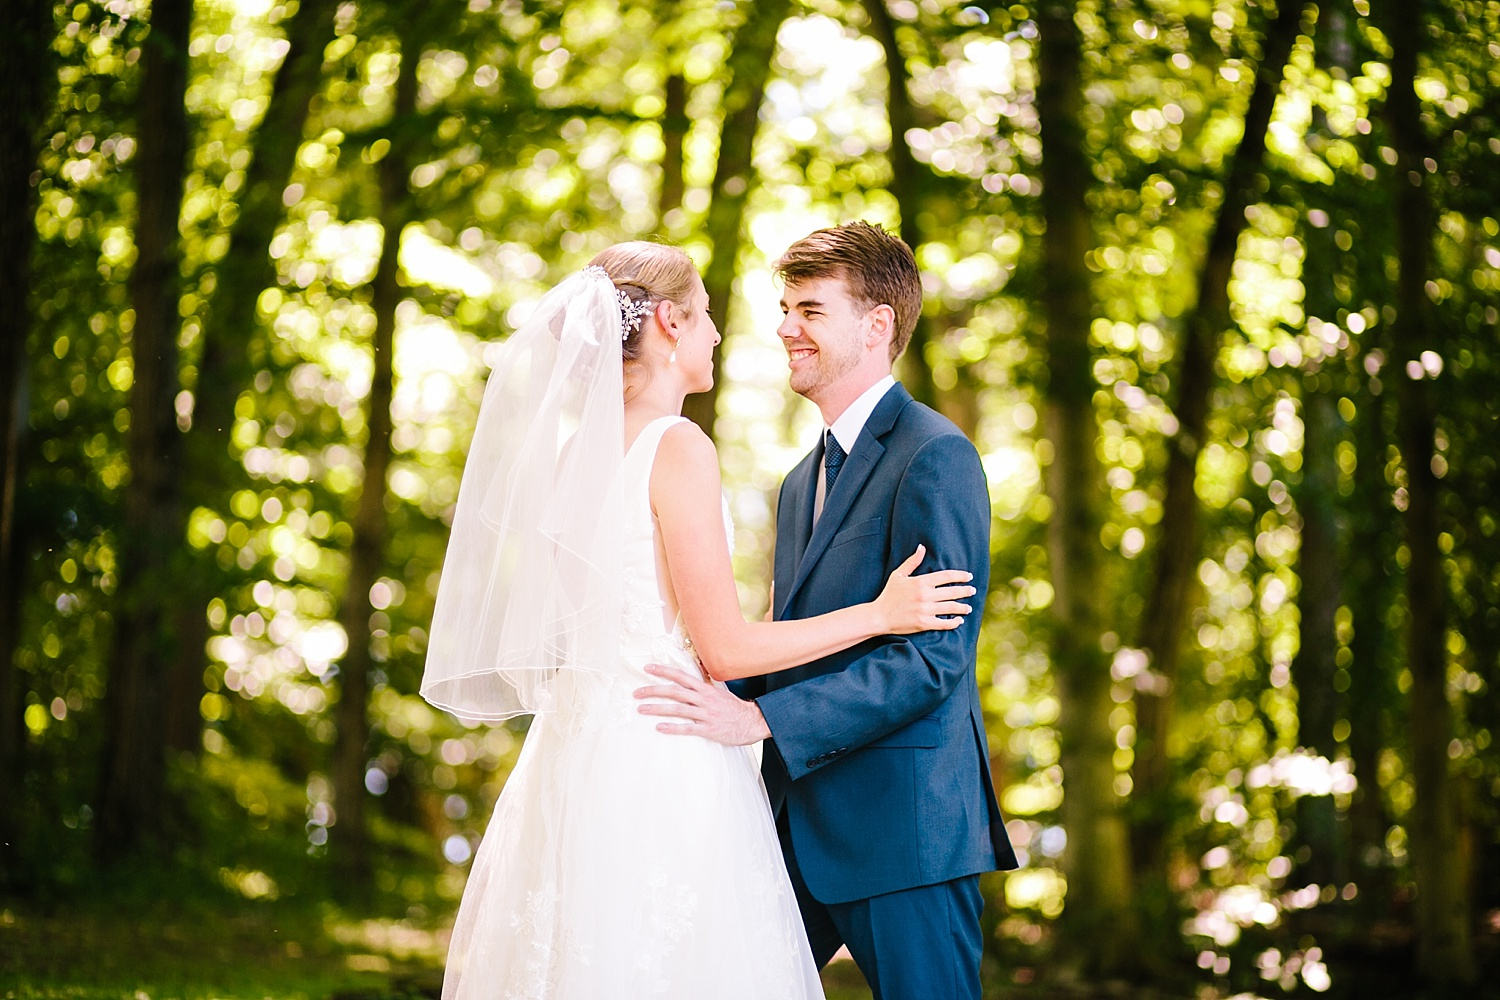 carleyauston_actionimpact_elverson_lancaster_camp_wedding029.jpg